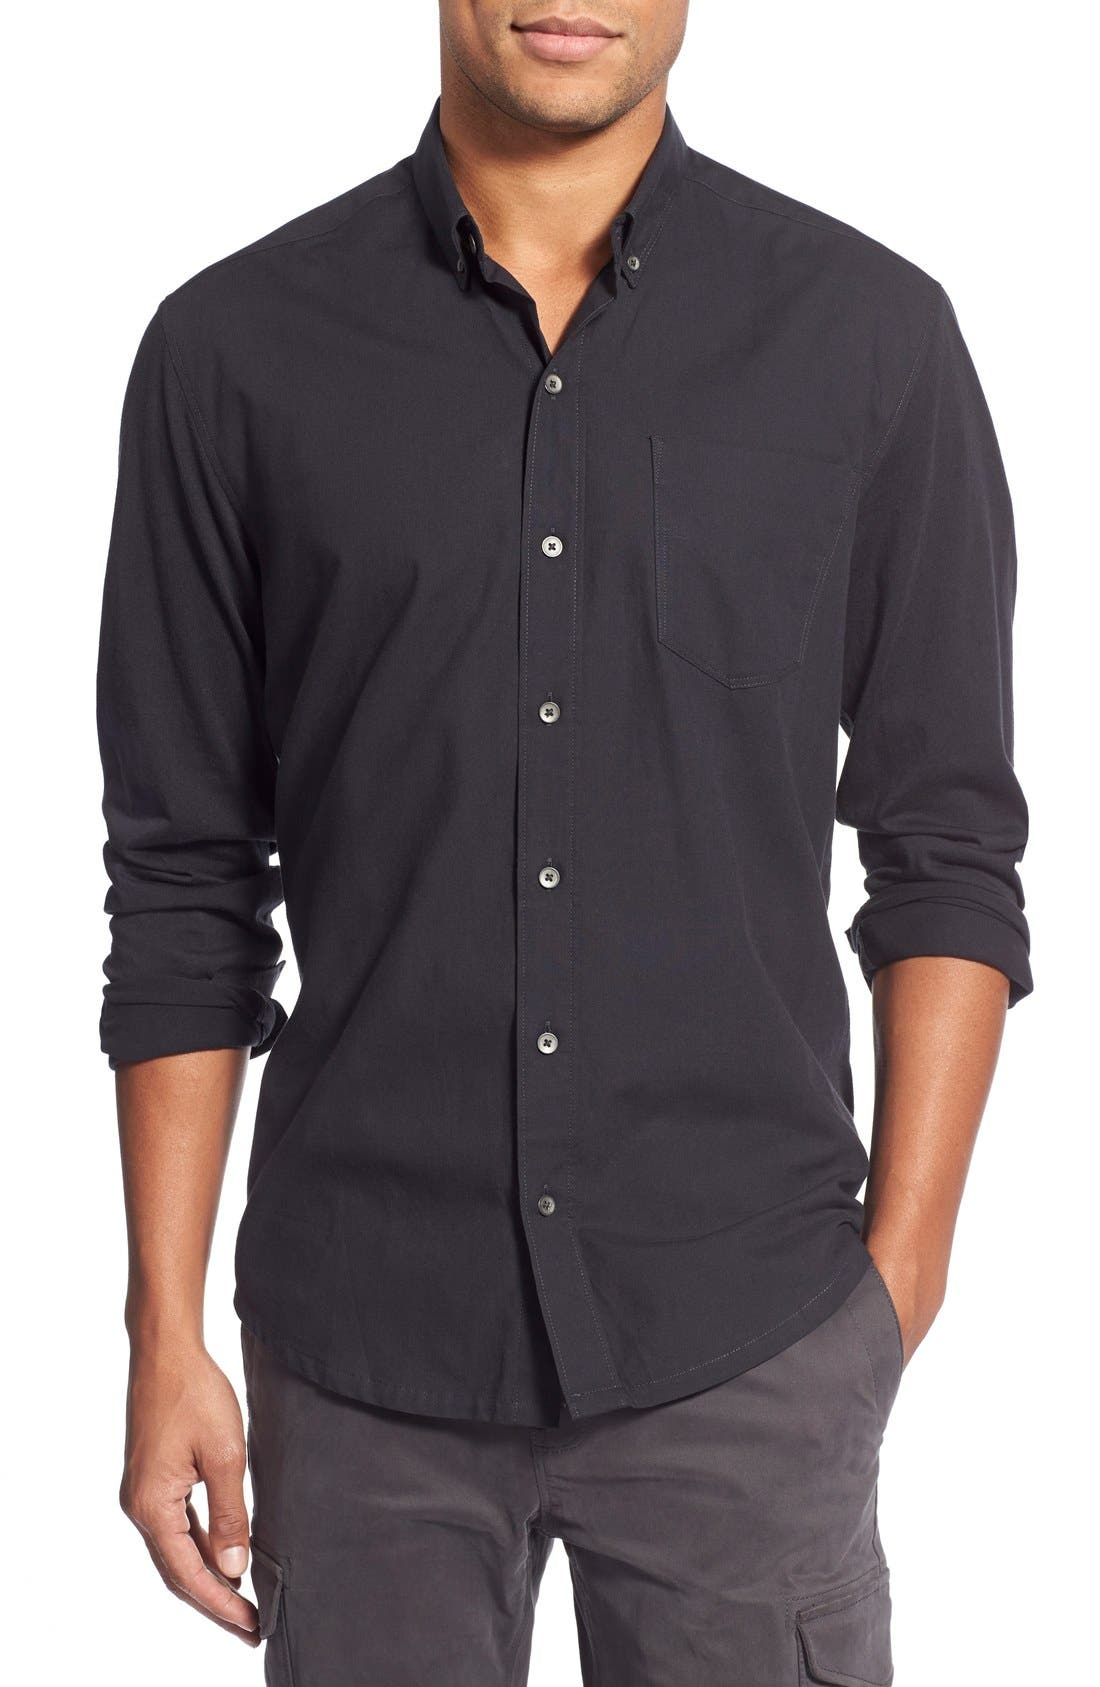 'Reworkd' Slim Fit Solid Mixed Media Sport Shirt,                         Main,                         color, 001